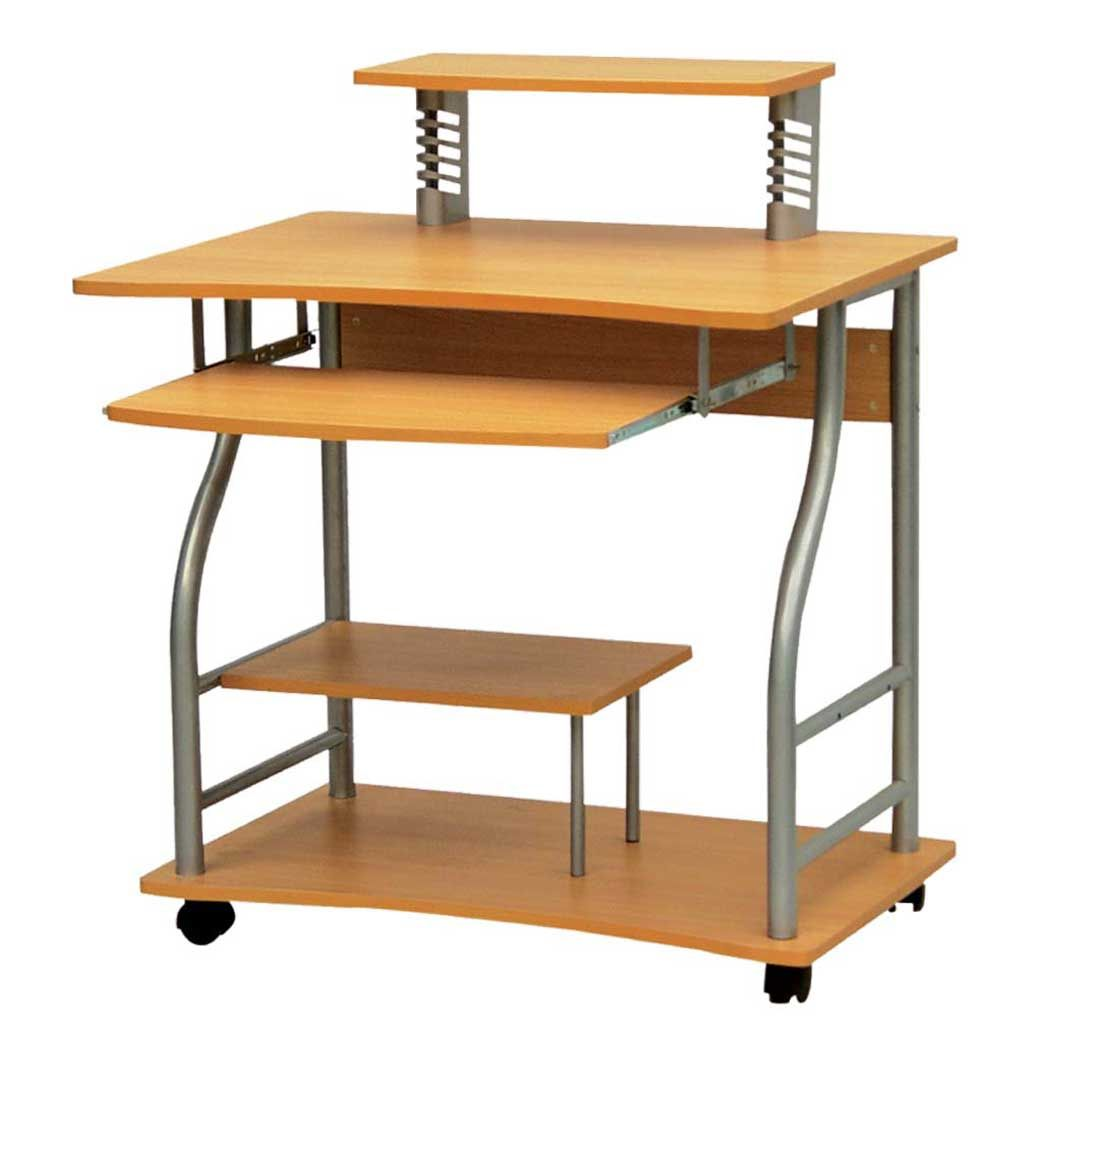 Cheap Small Computer Desk Ideas To Decorate Desk Check More At Http Www Gameintown Com Cheap Desks For Small Spaces Computer Furniture Small Computer Desk